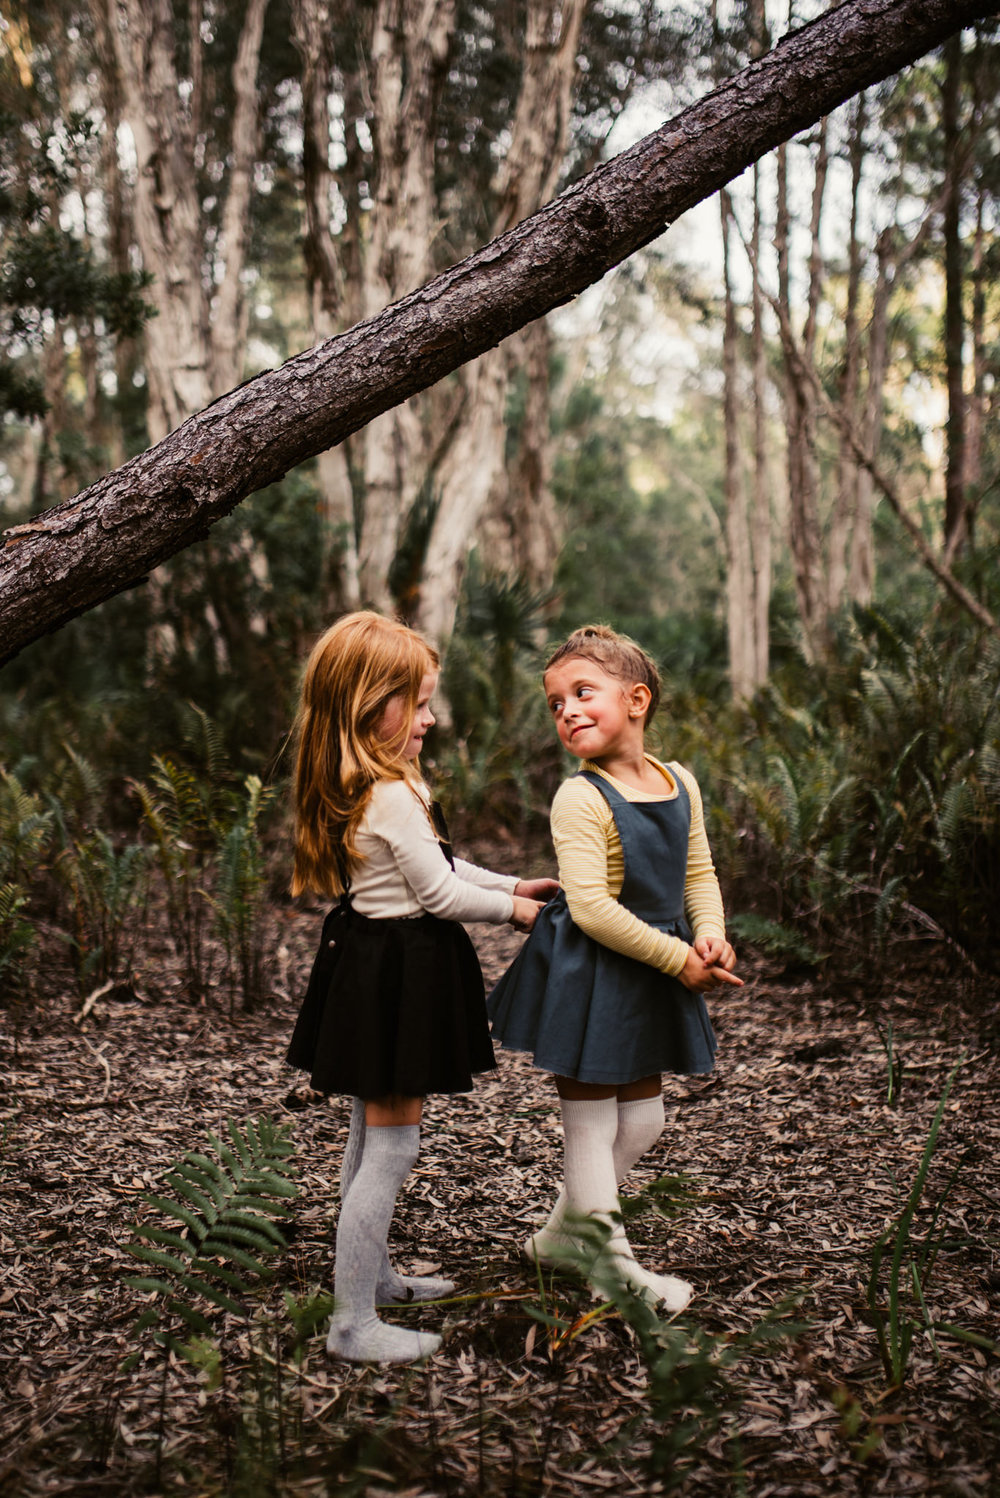 twyla jones photography - treasure coast florida - childrens adventure clothing commercial shoot--21.jpg